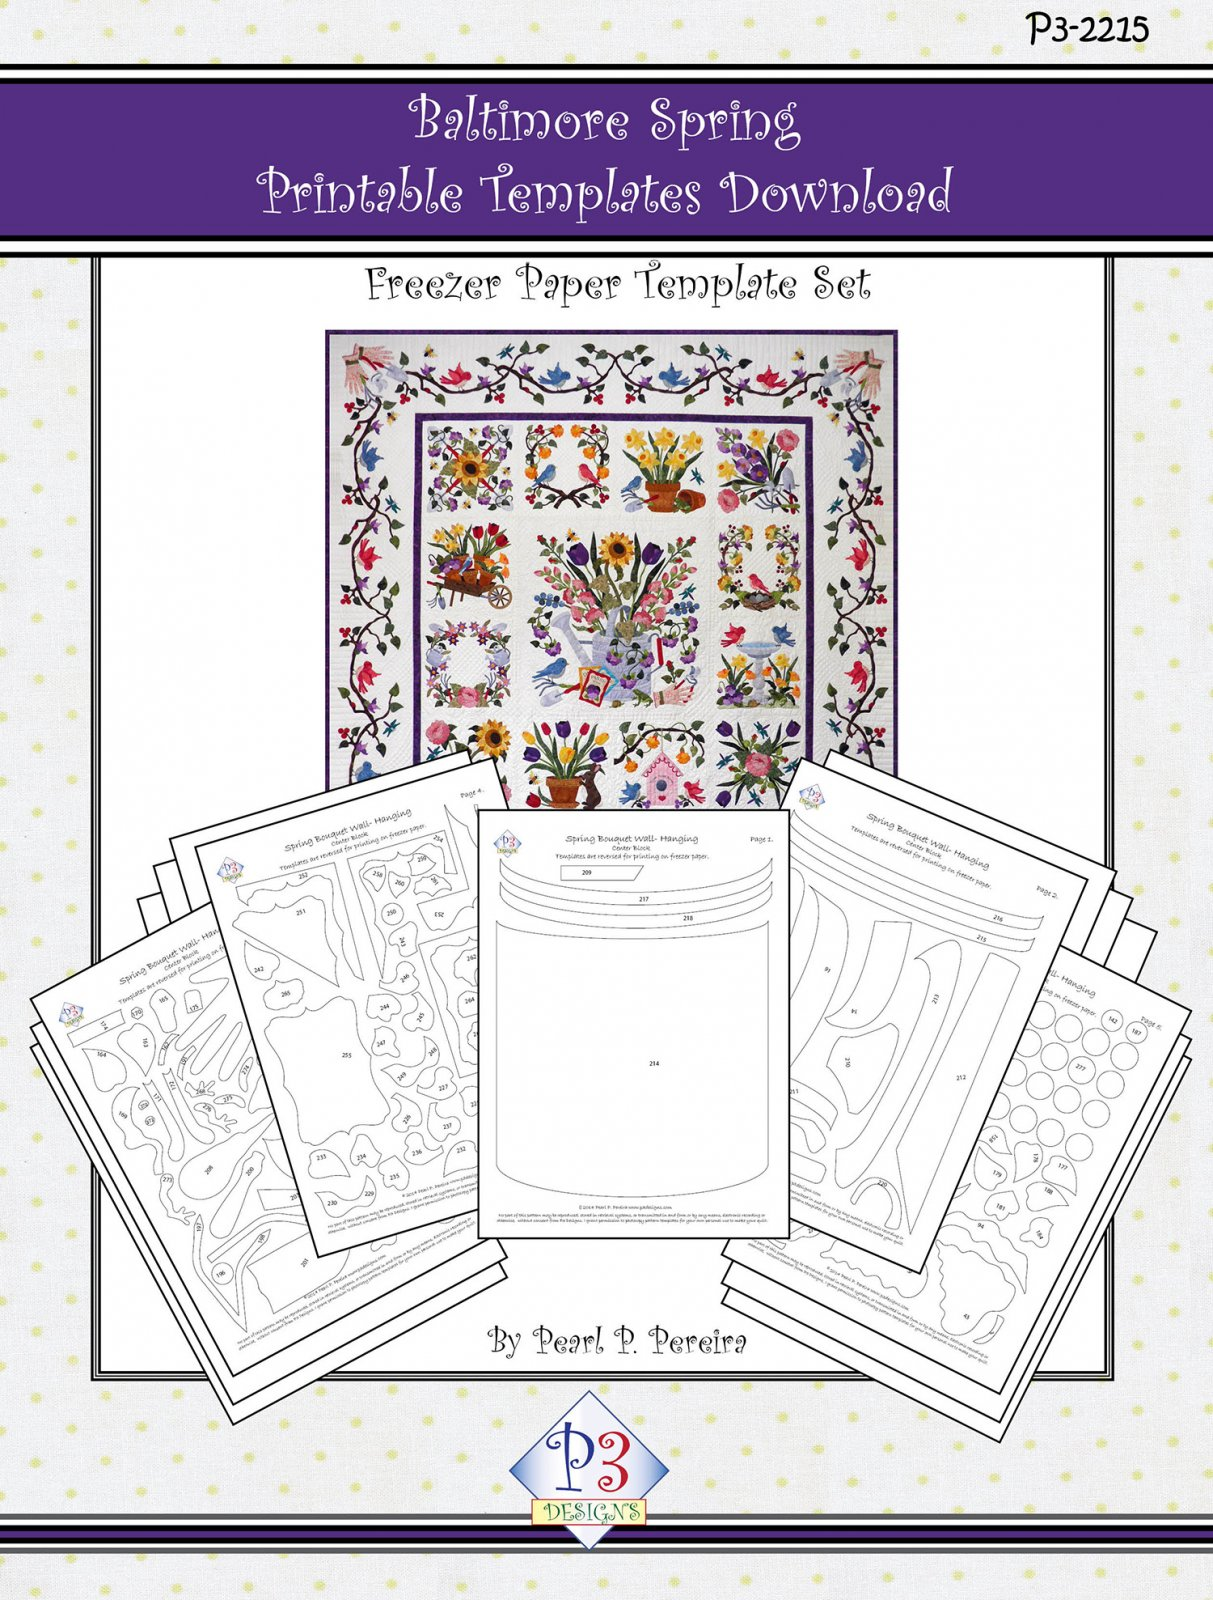 P3-2215 Baltimore Spring Template Only Download